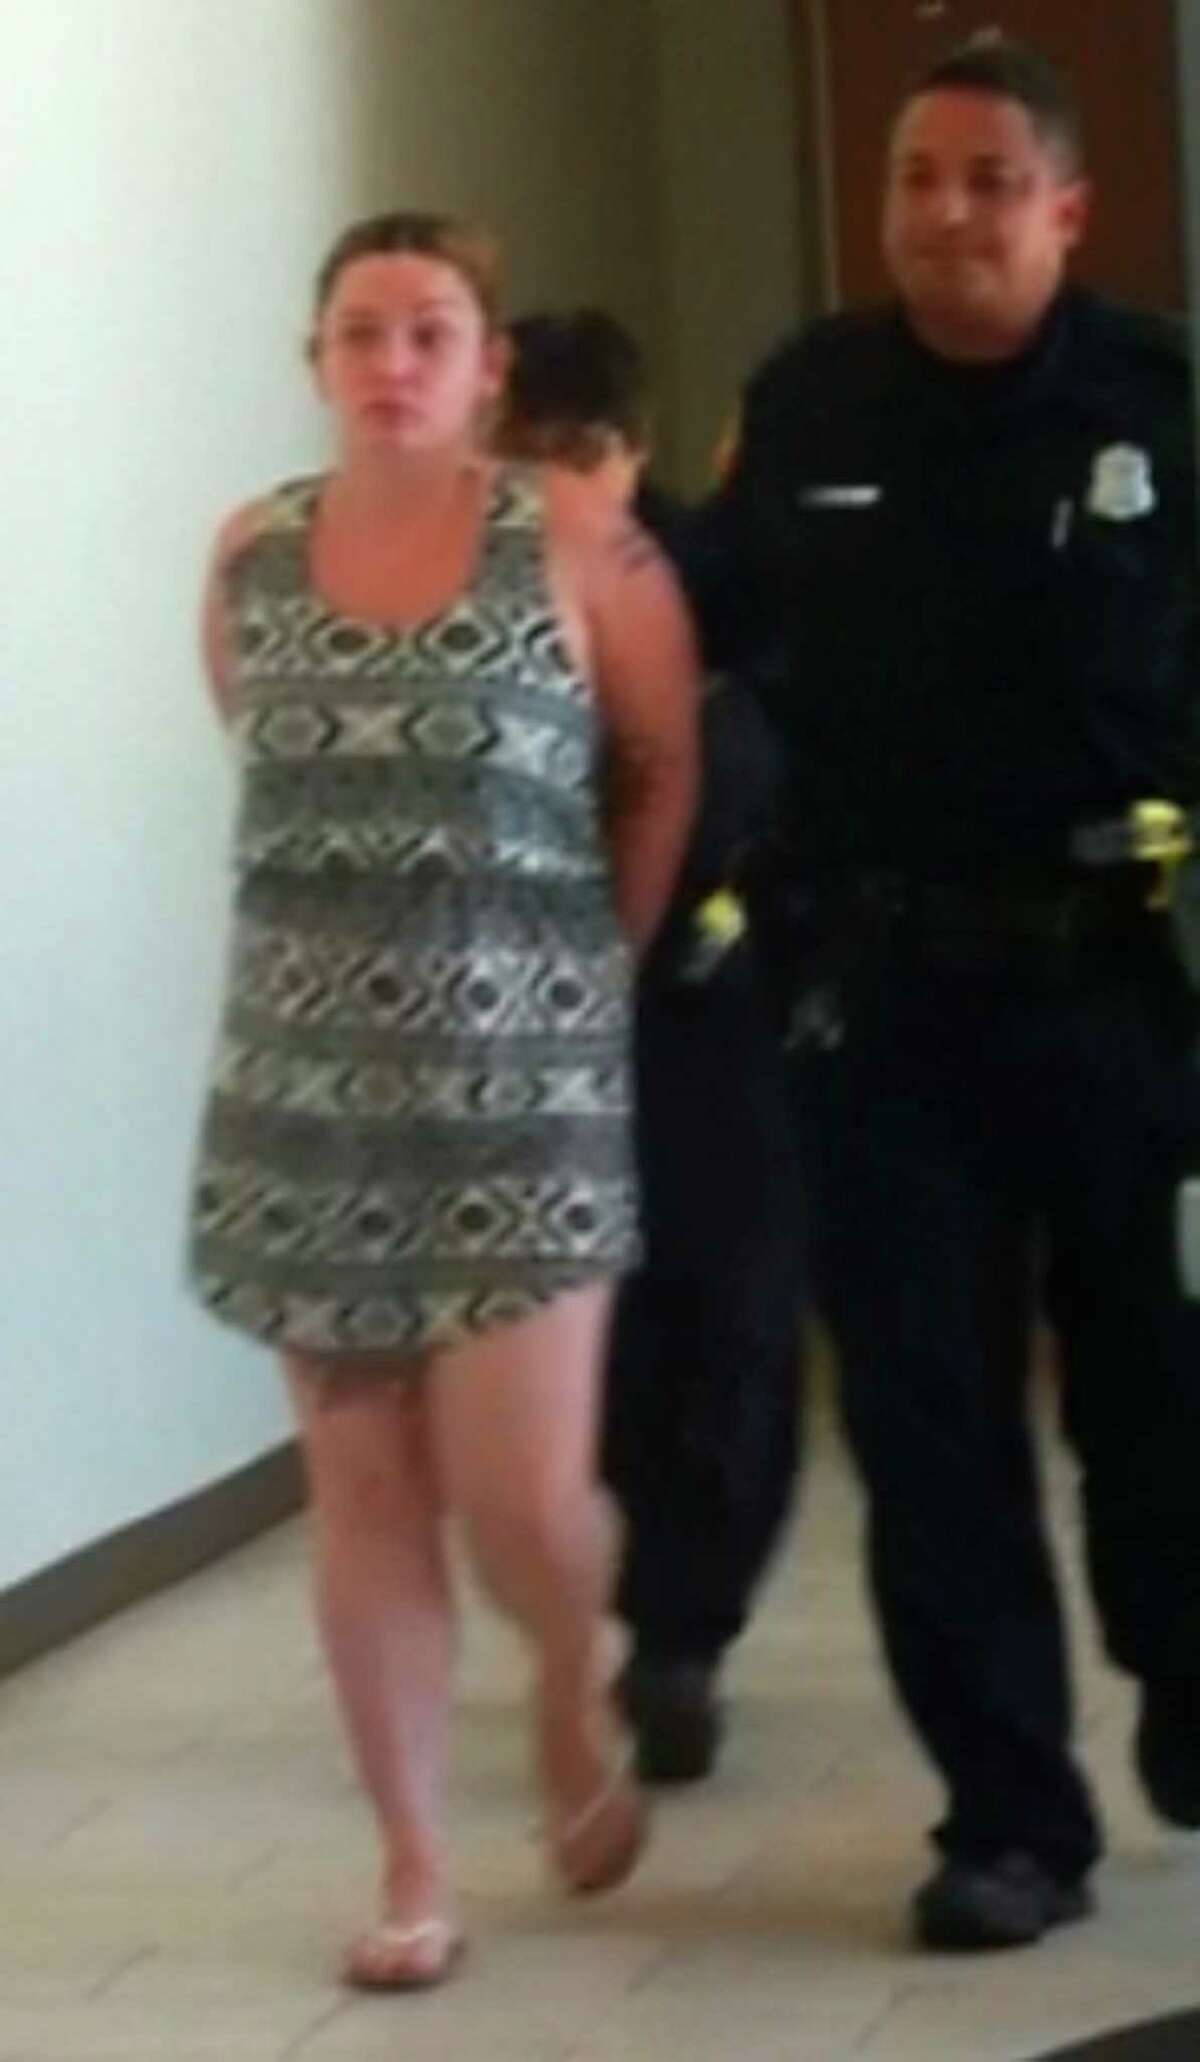 Police escort Breanna Marie Ancira from the city's public safety headquarters after her arrest on Thursday, July 25, 2013. Ancira faces a capital murder charge in the death of Baby Girl Harrison.